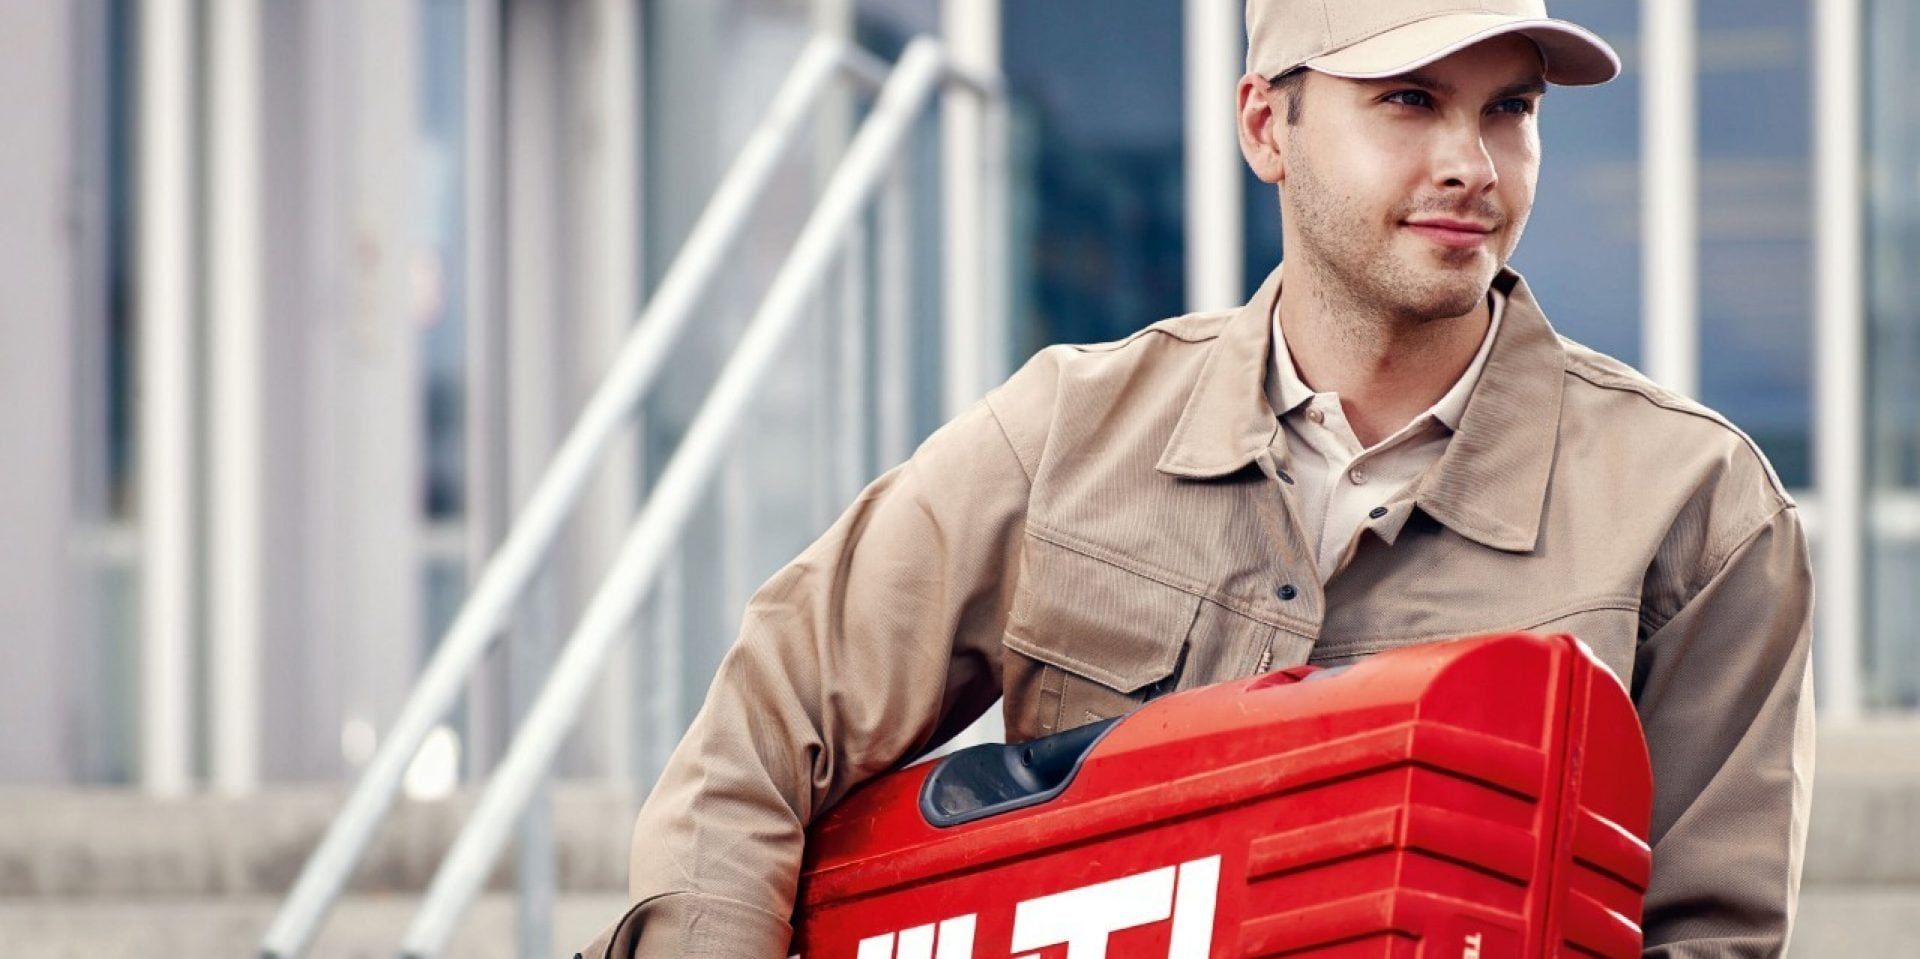 Hilti tool repair turnaround time